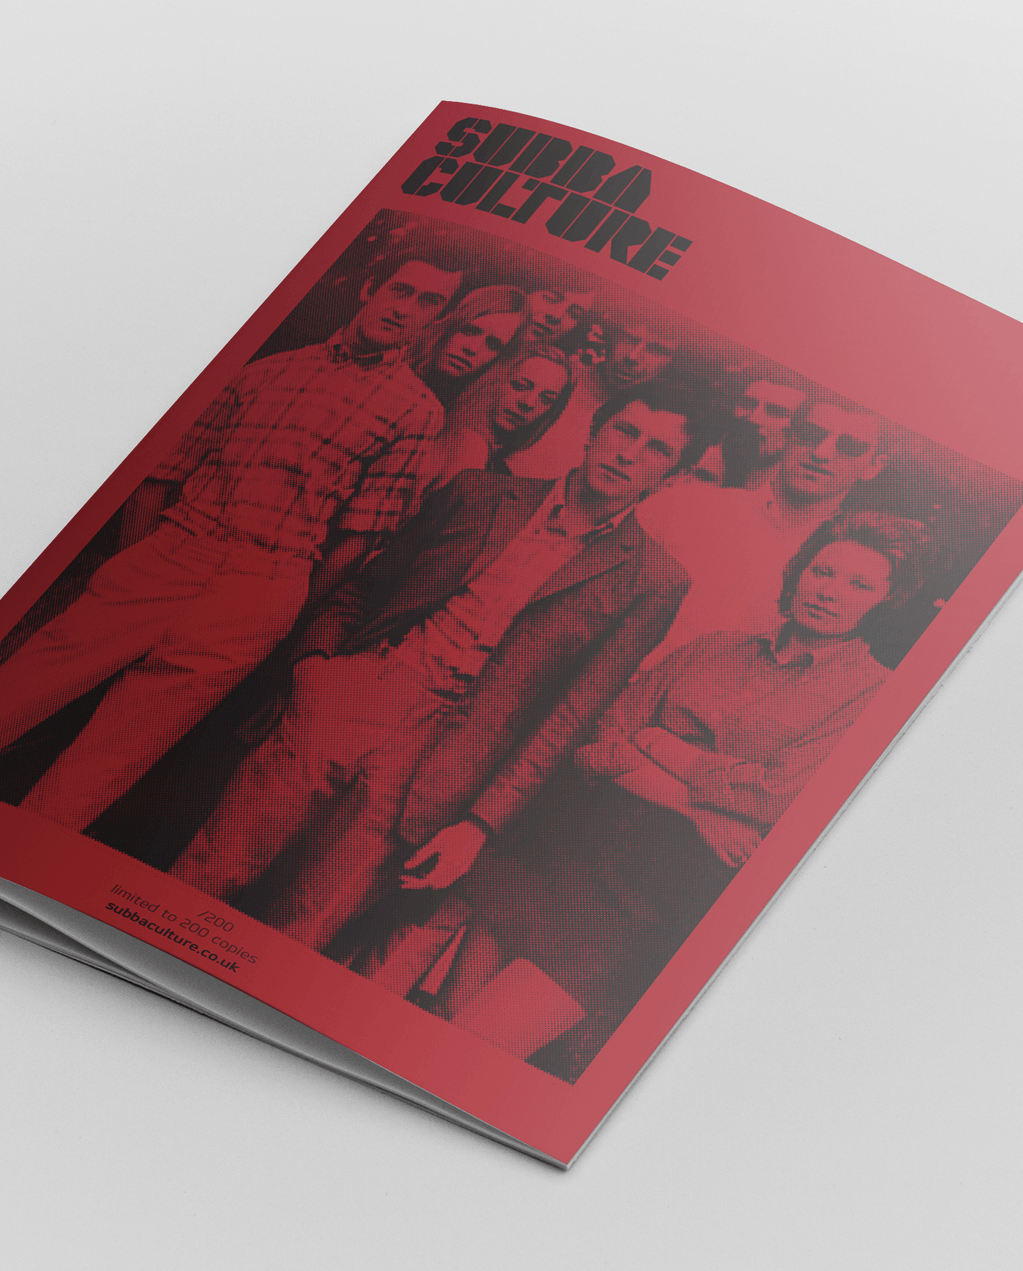 Image of Subbaculture Issue 2